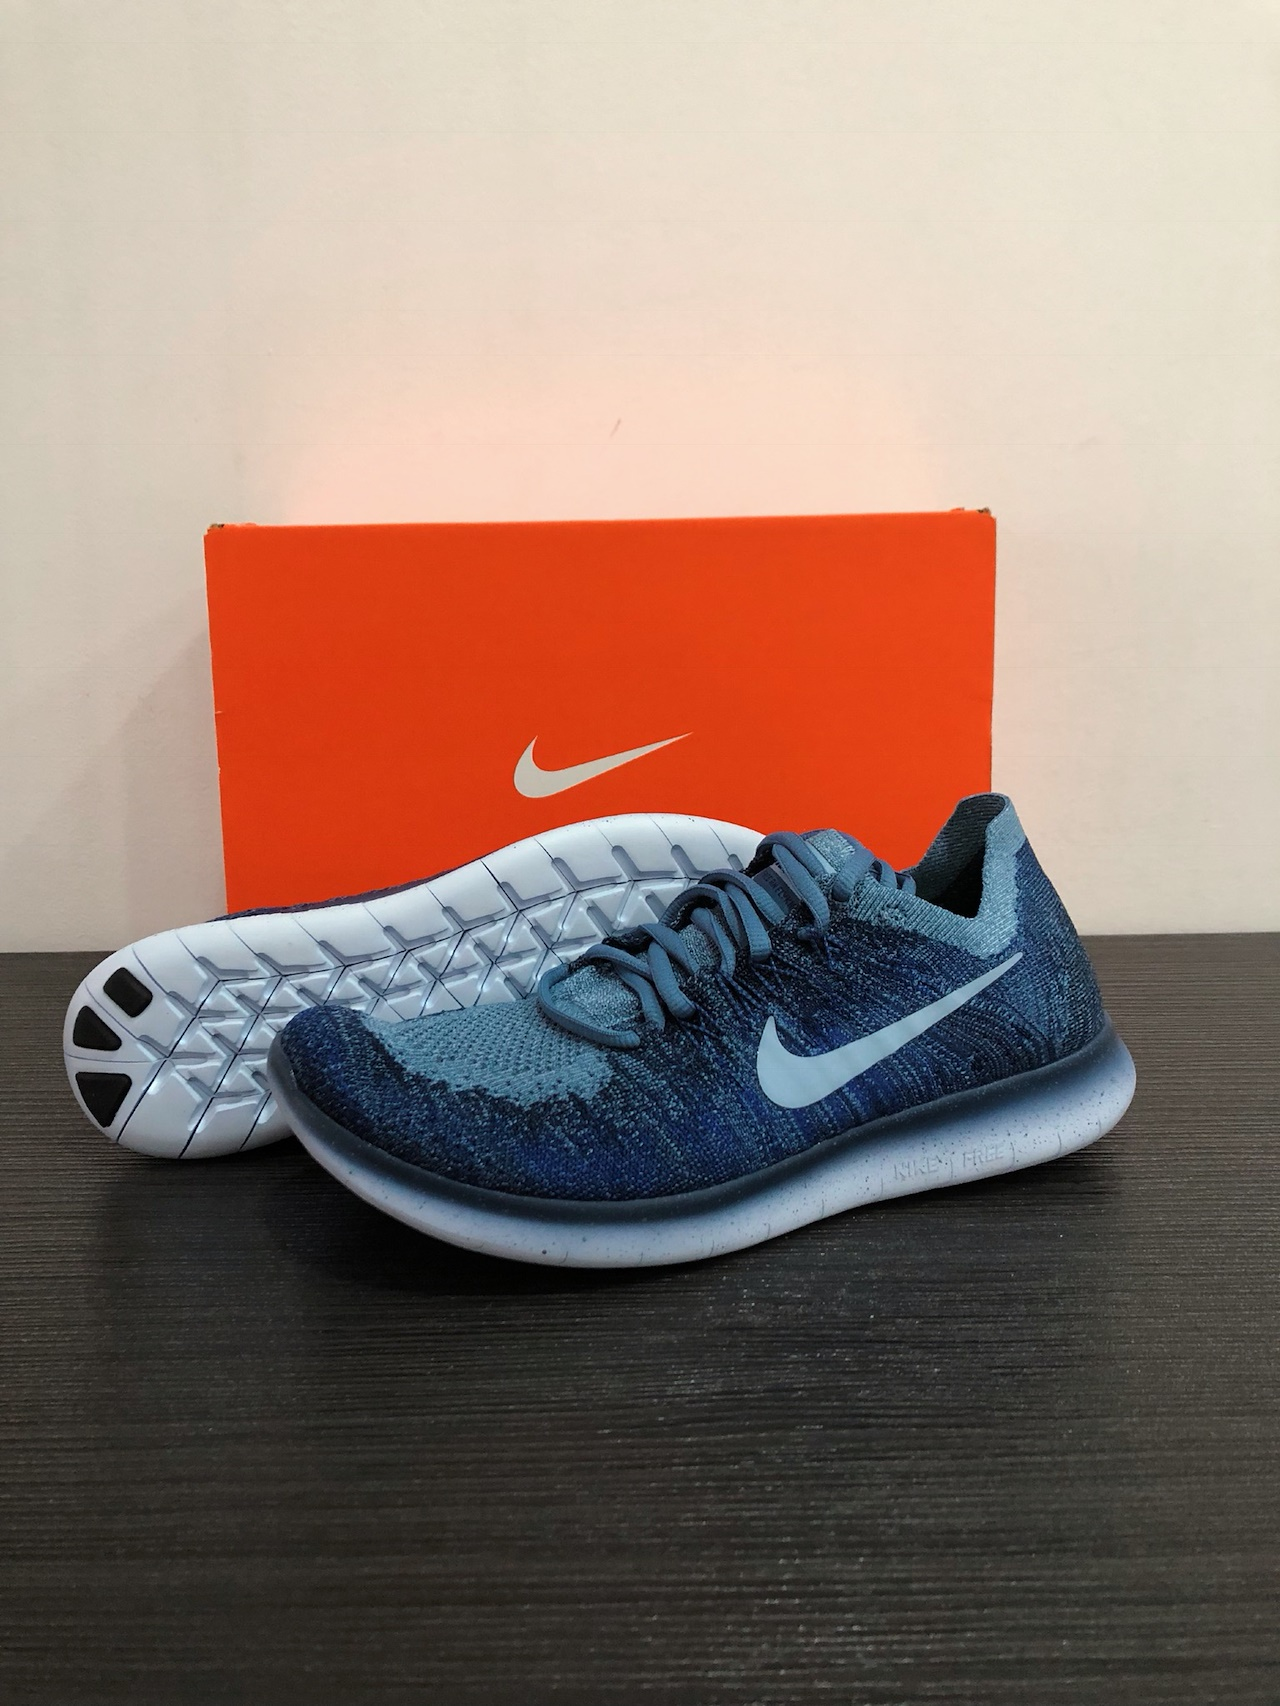 7325bede6846 Womens Collection Option  W4 WMNS NIKE Free RN Flyknit 2017 (Ocean Fog Cirrus  Blue) Style  880844 404. US 7.5